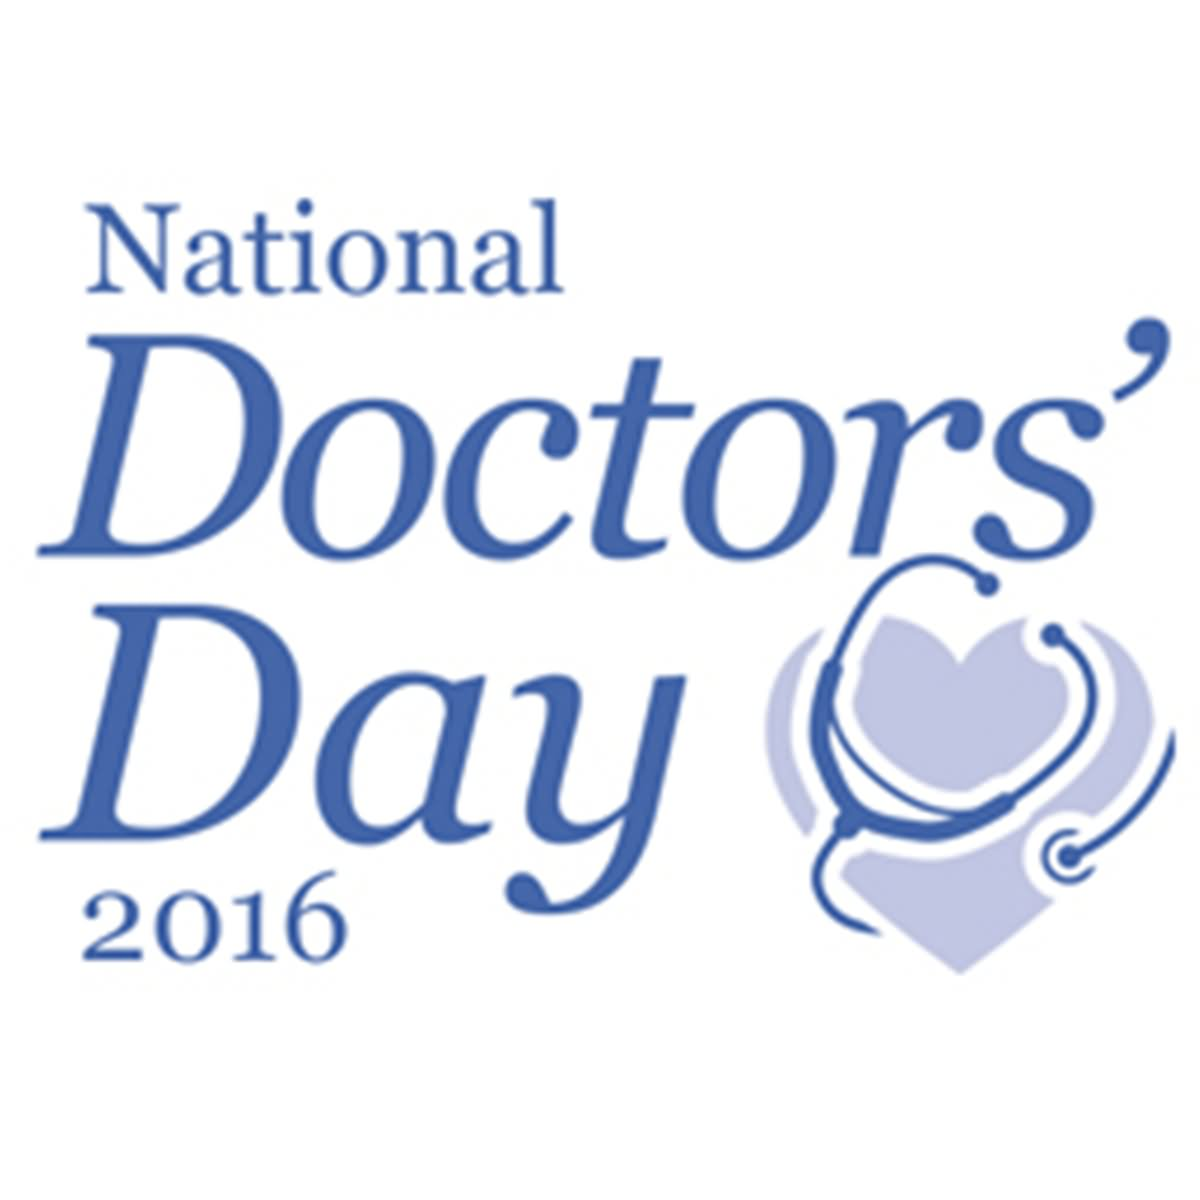 National doctors day wishes m4hsunfo